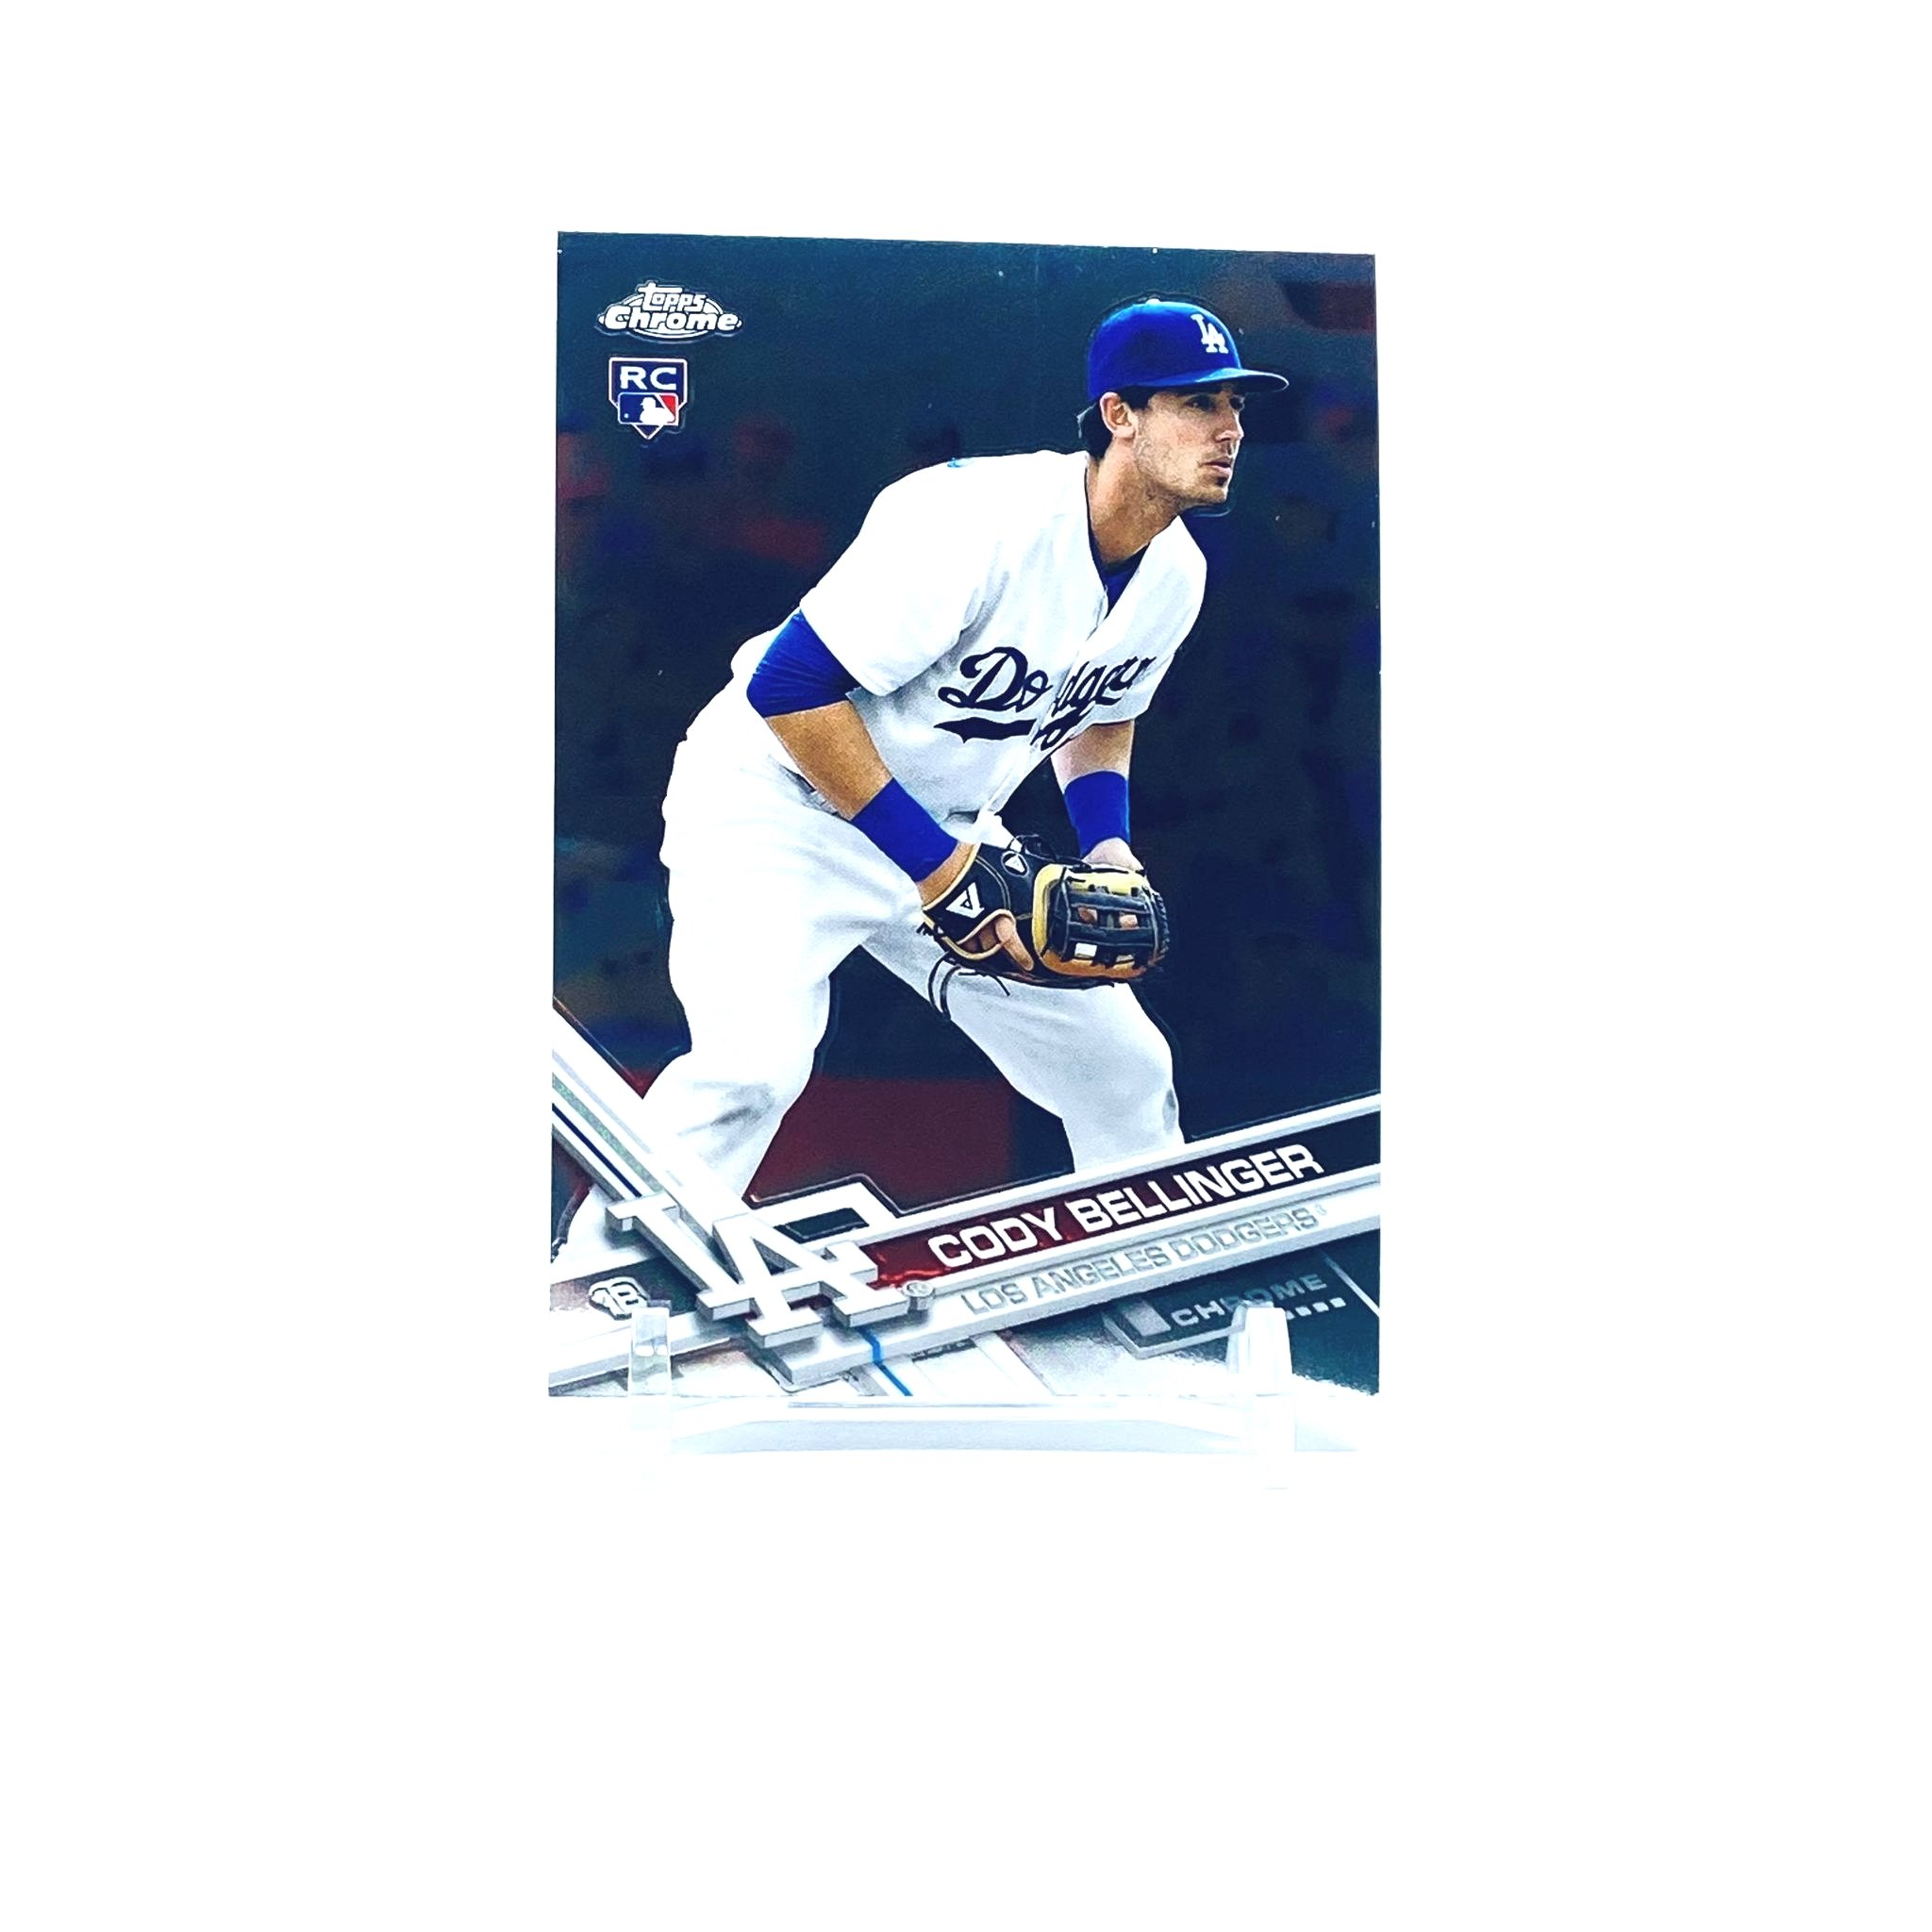 2017 Topps Chrome Cody Bellinger Rookie Card Los Angeles Dodgers